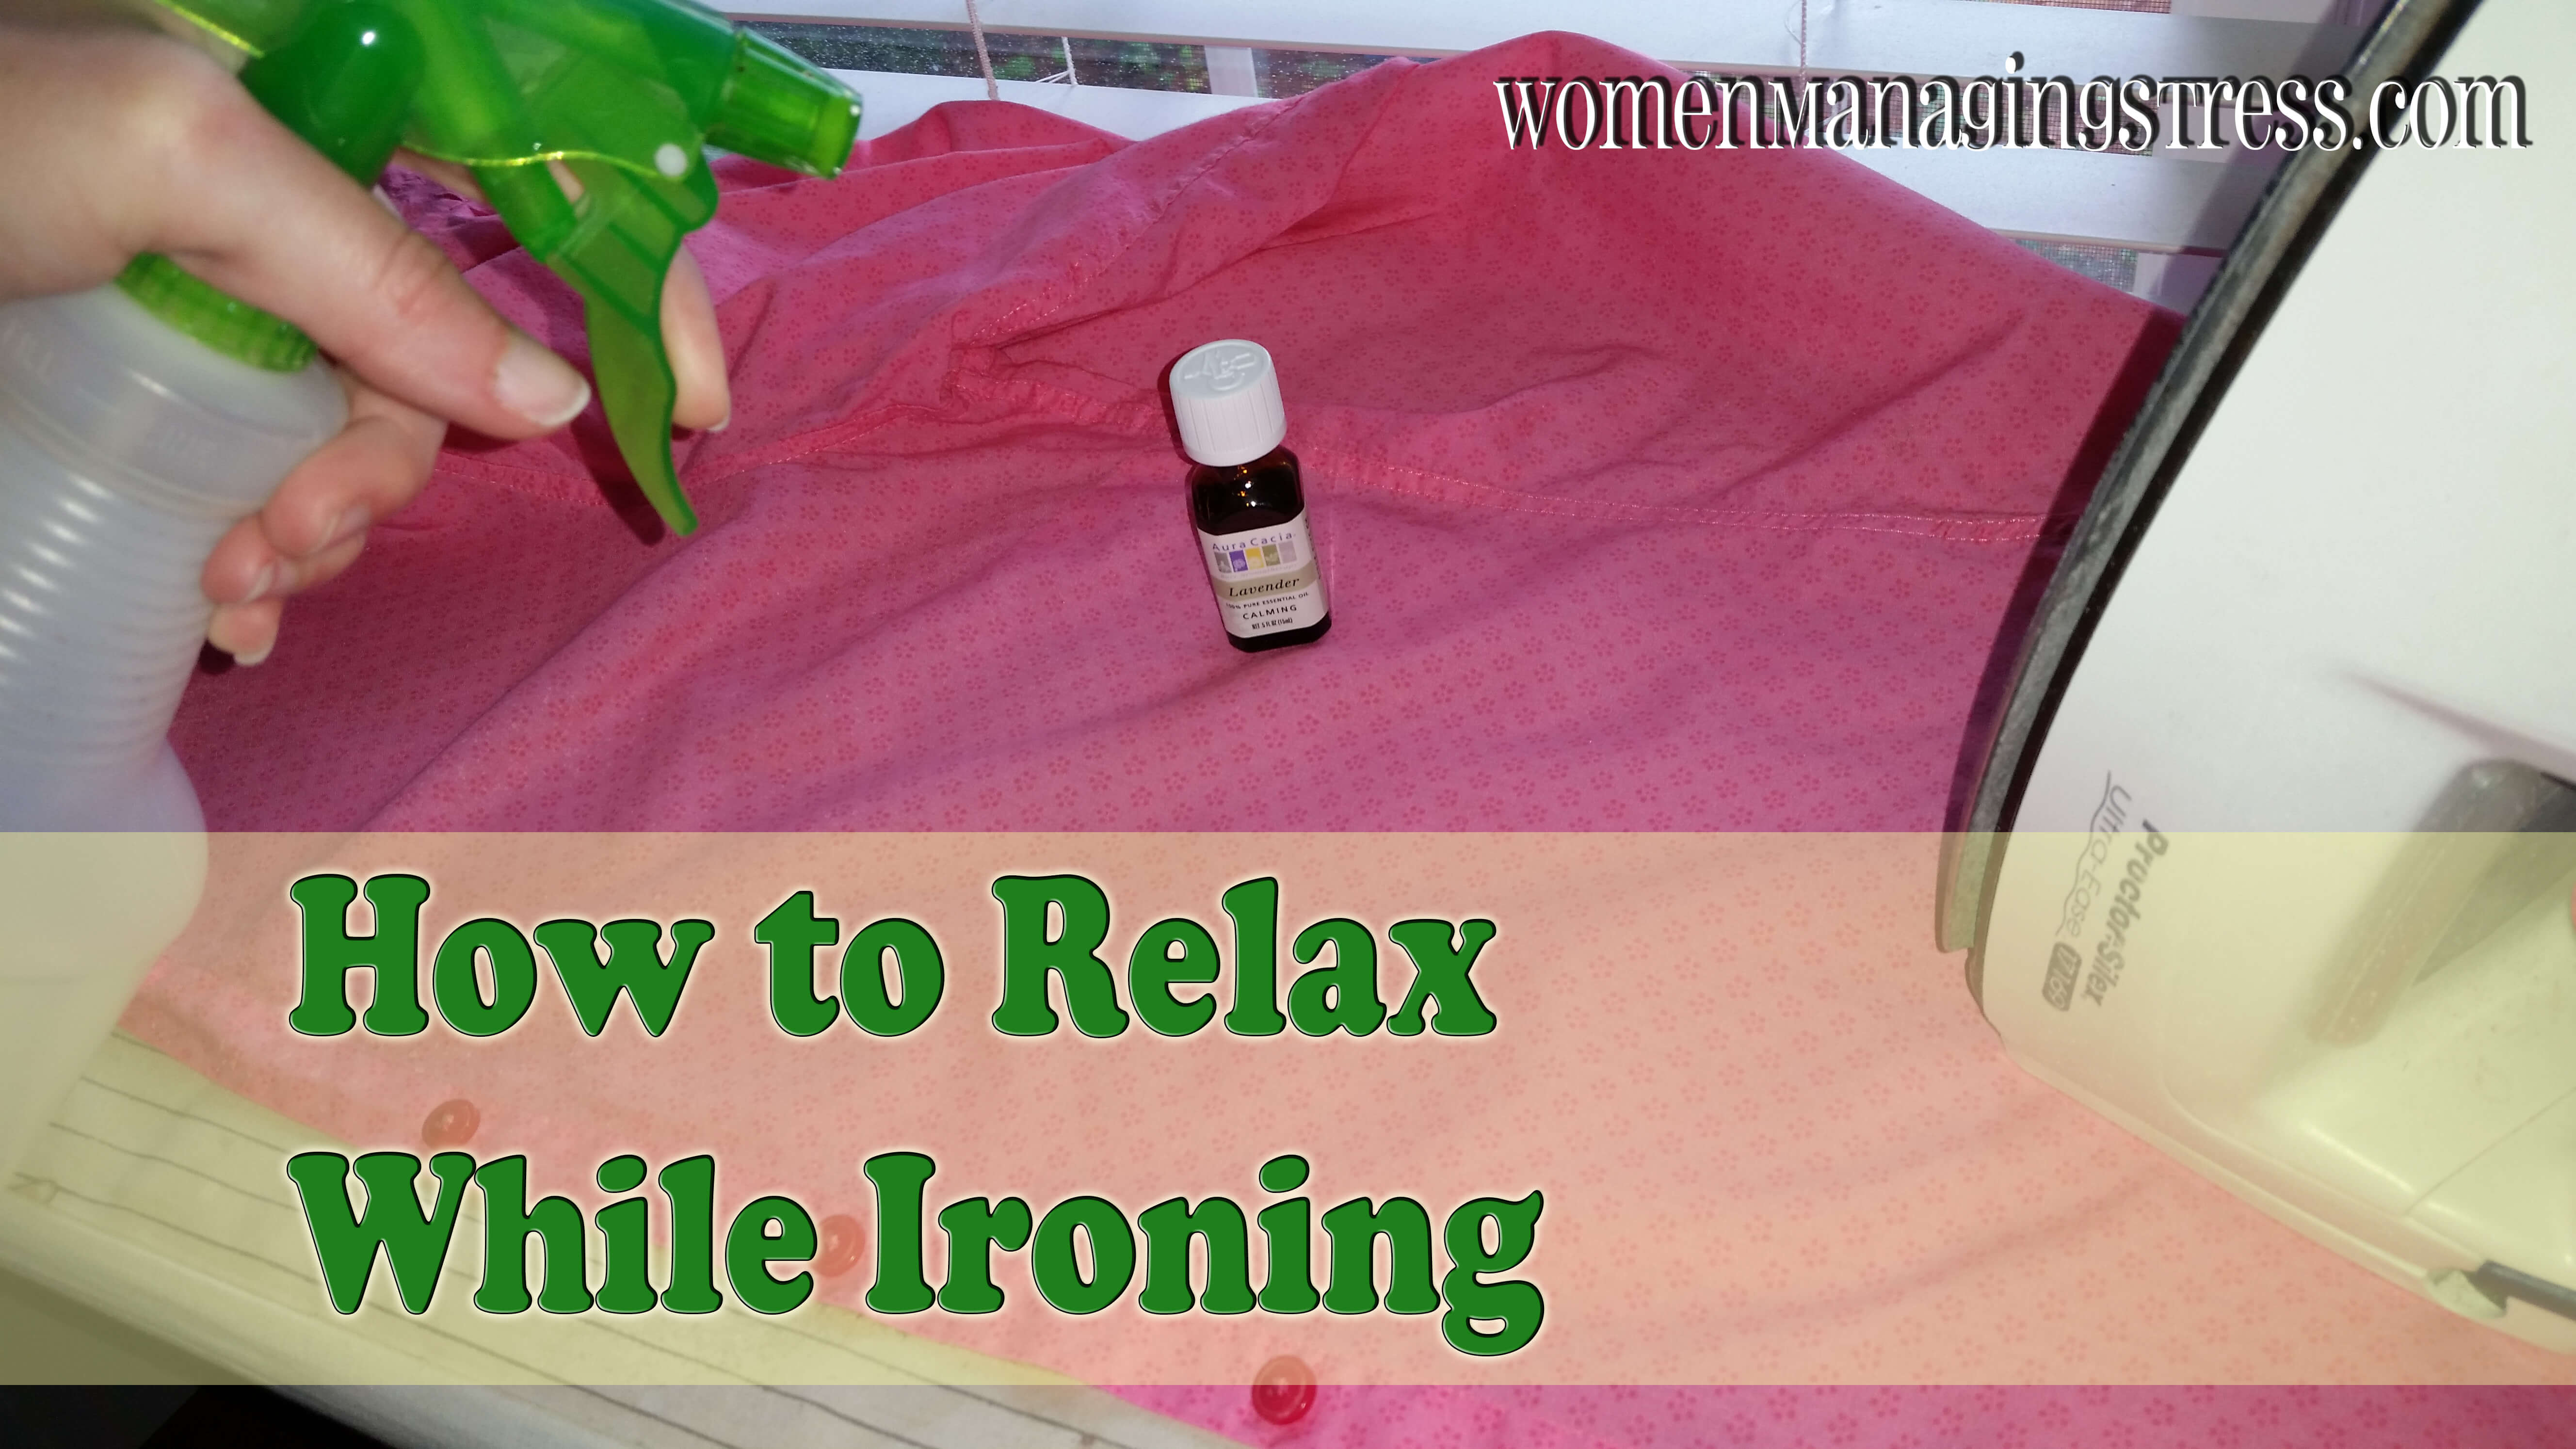 How to Relax While Ironing